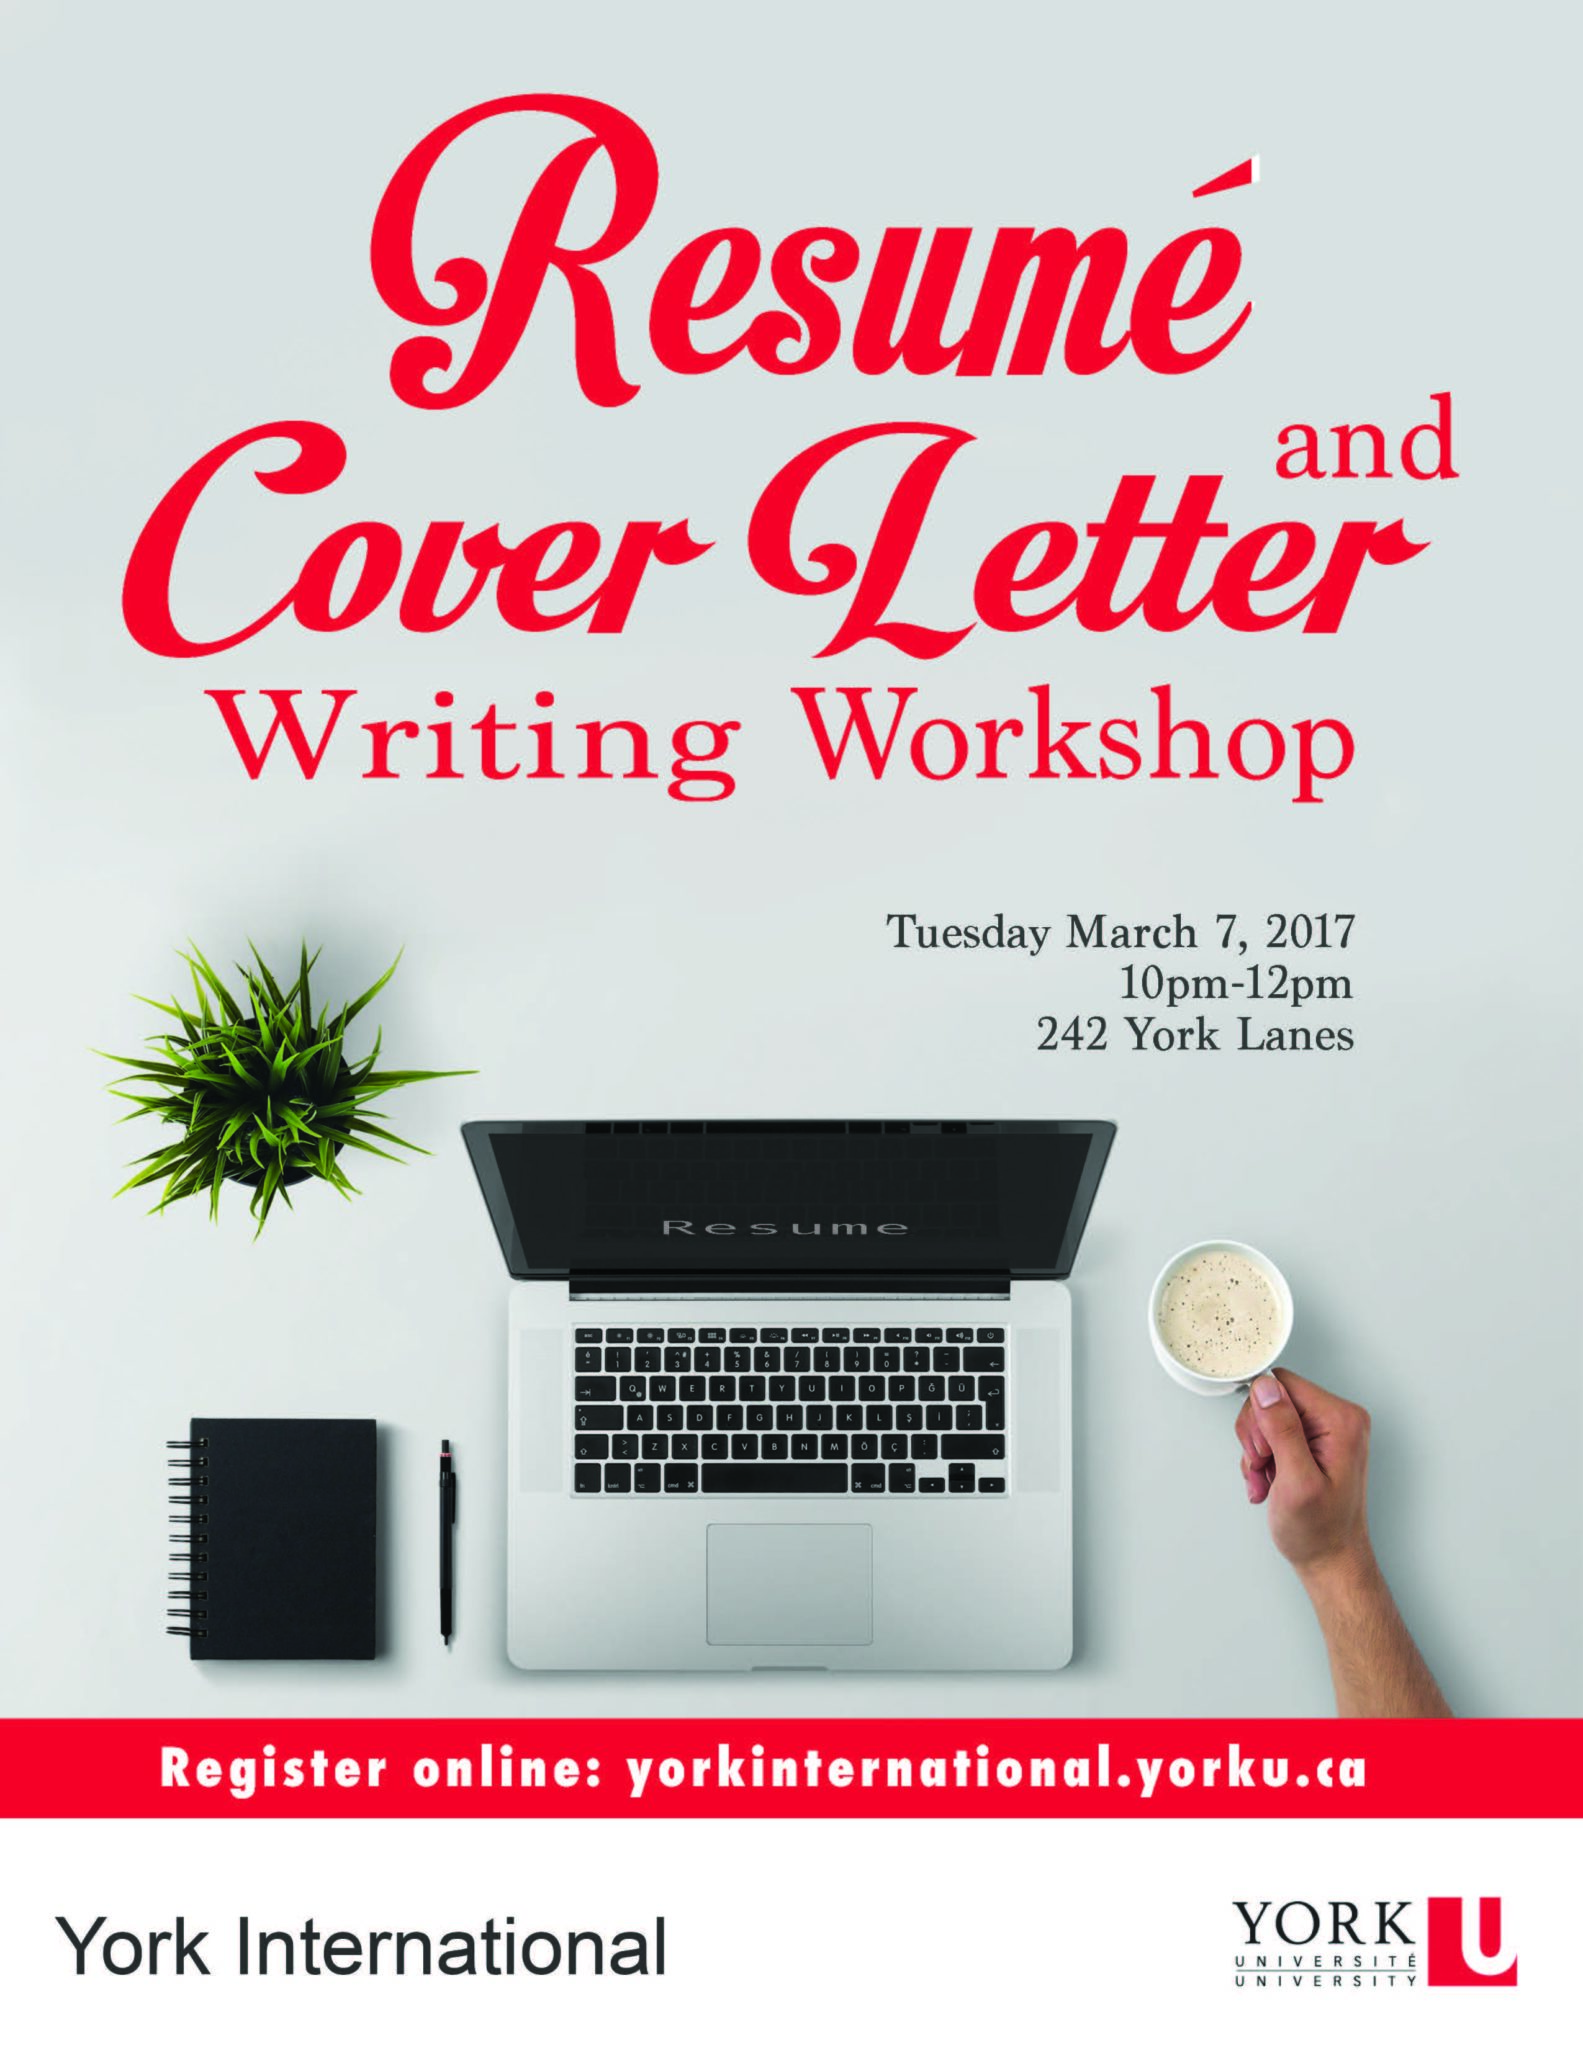 9resume-and-cover-letter-workshop-mar-7